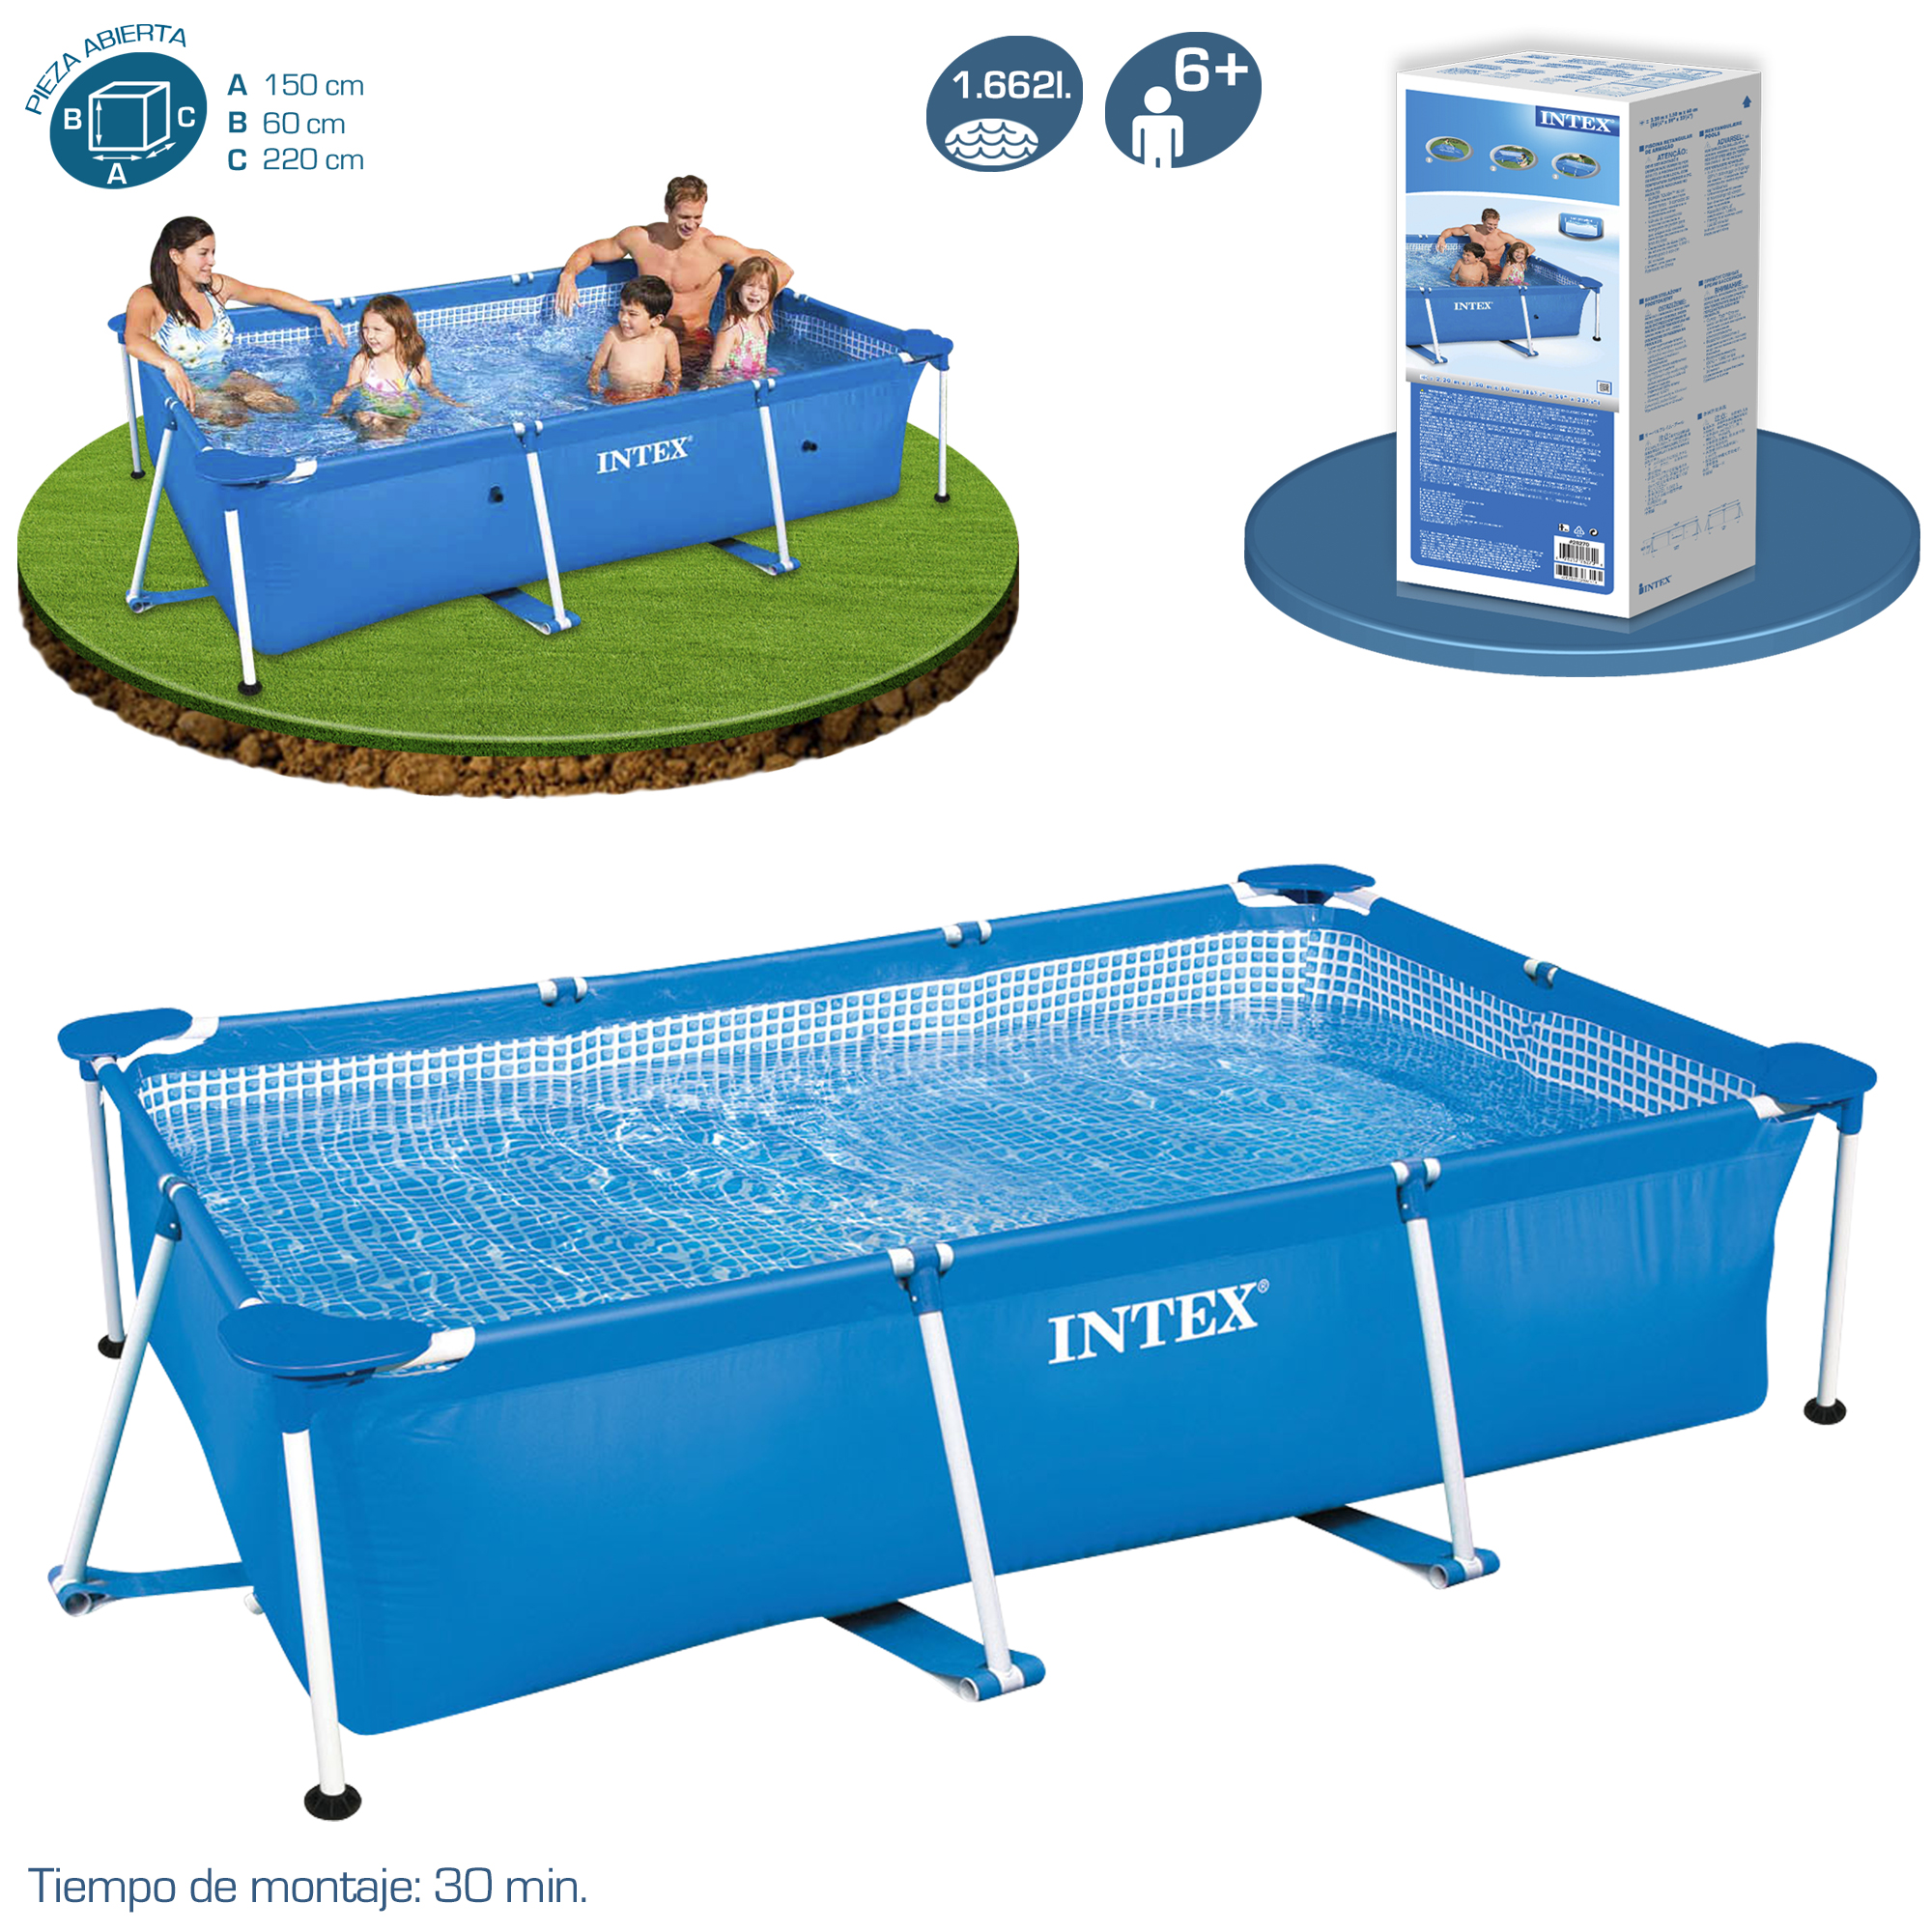 Piscina intex small rectangular frame piscinas desmontables for Piscinas desmontables intex